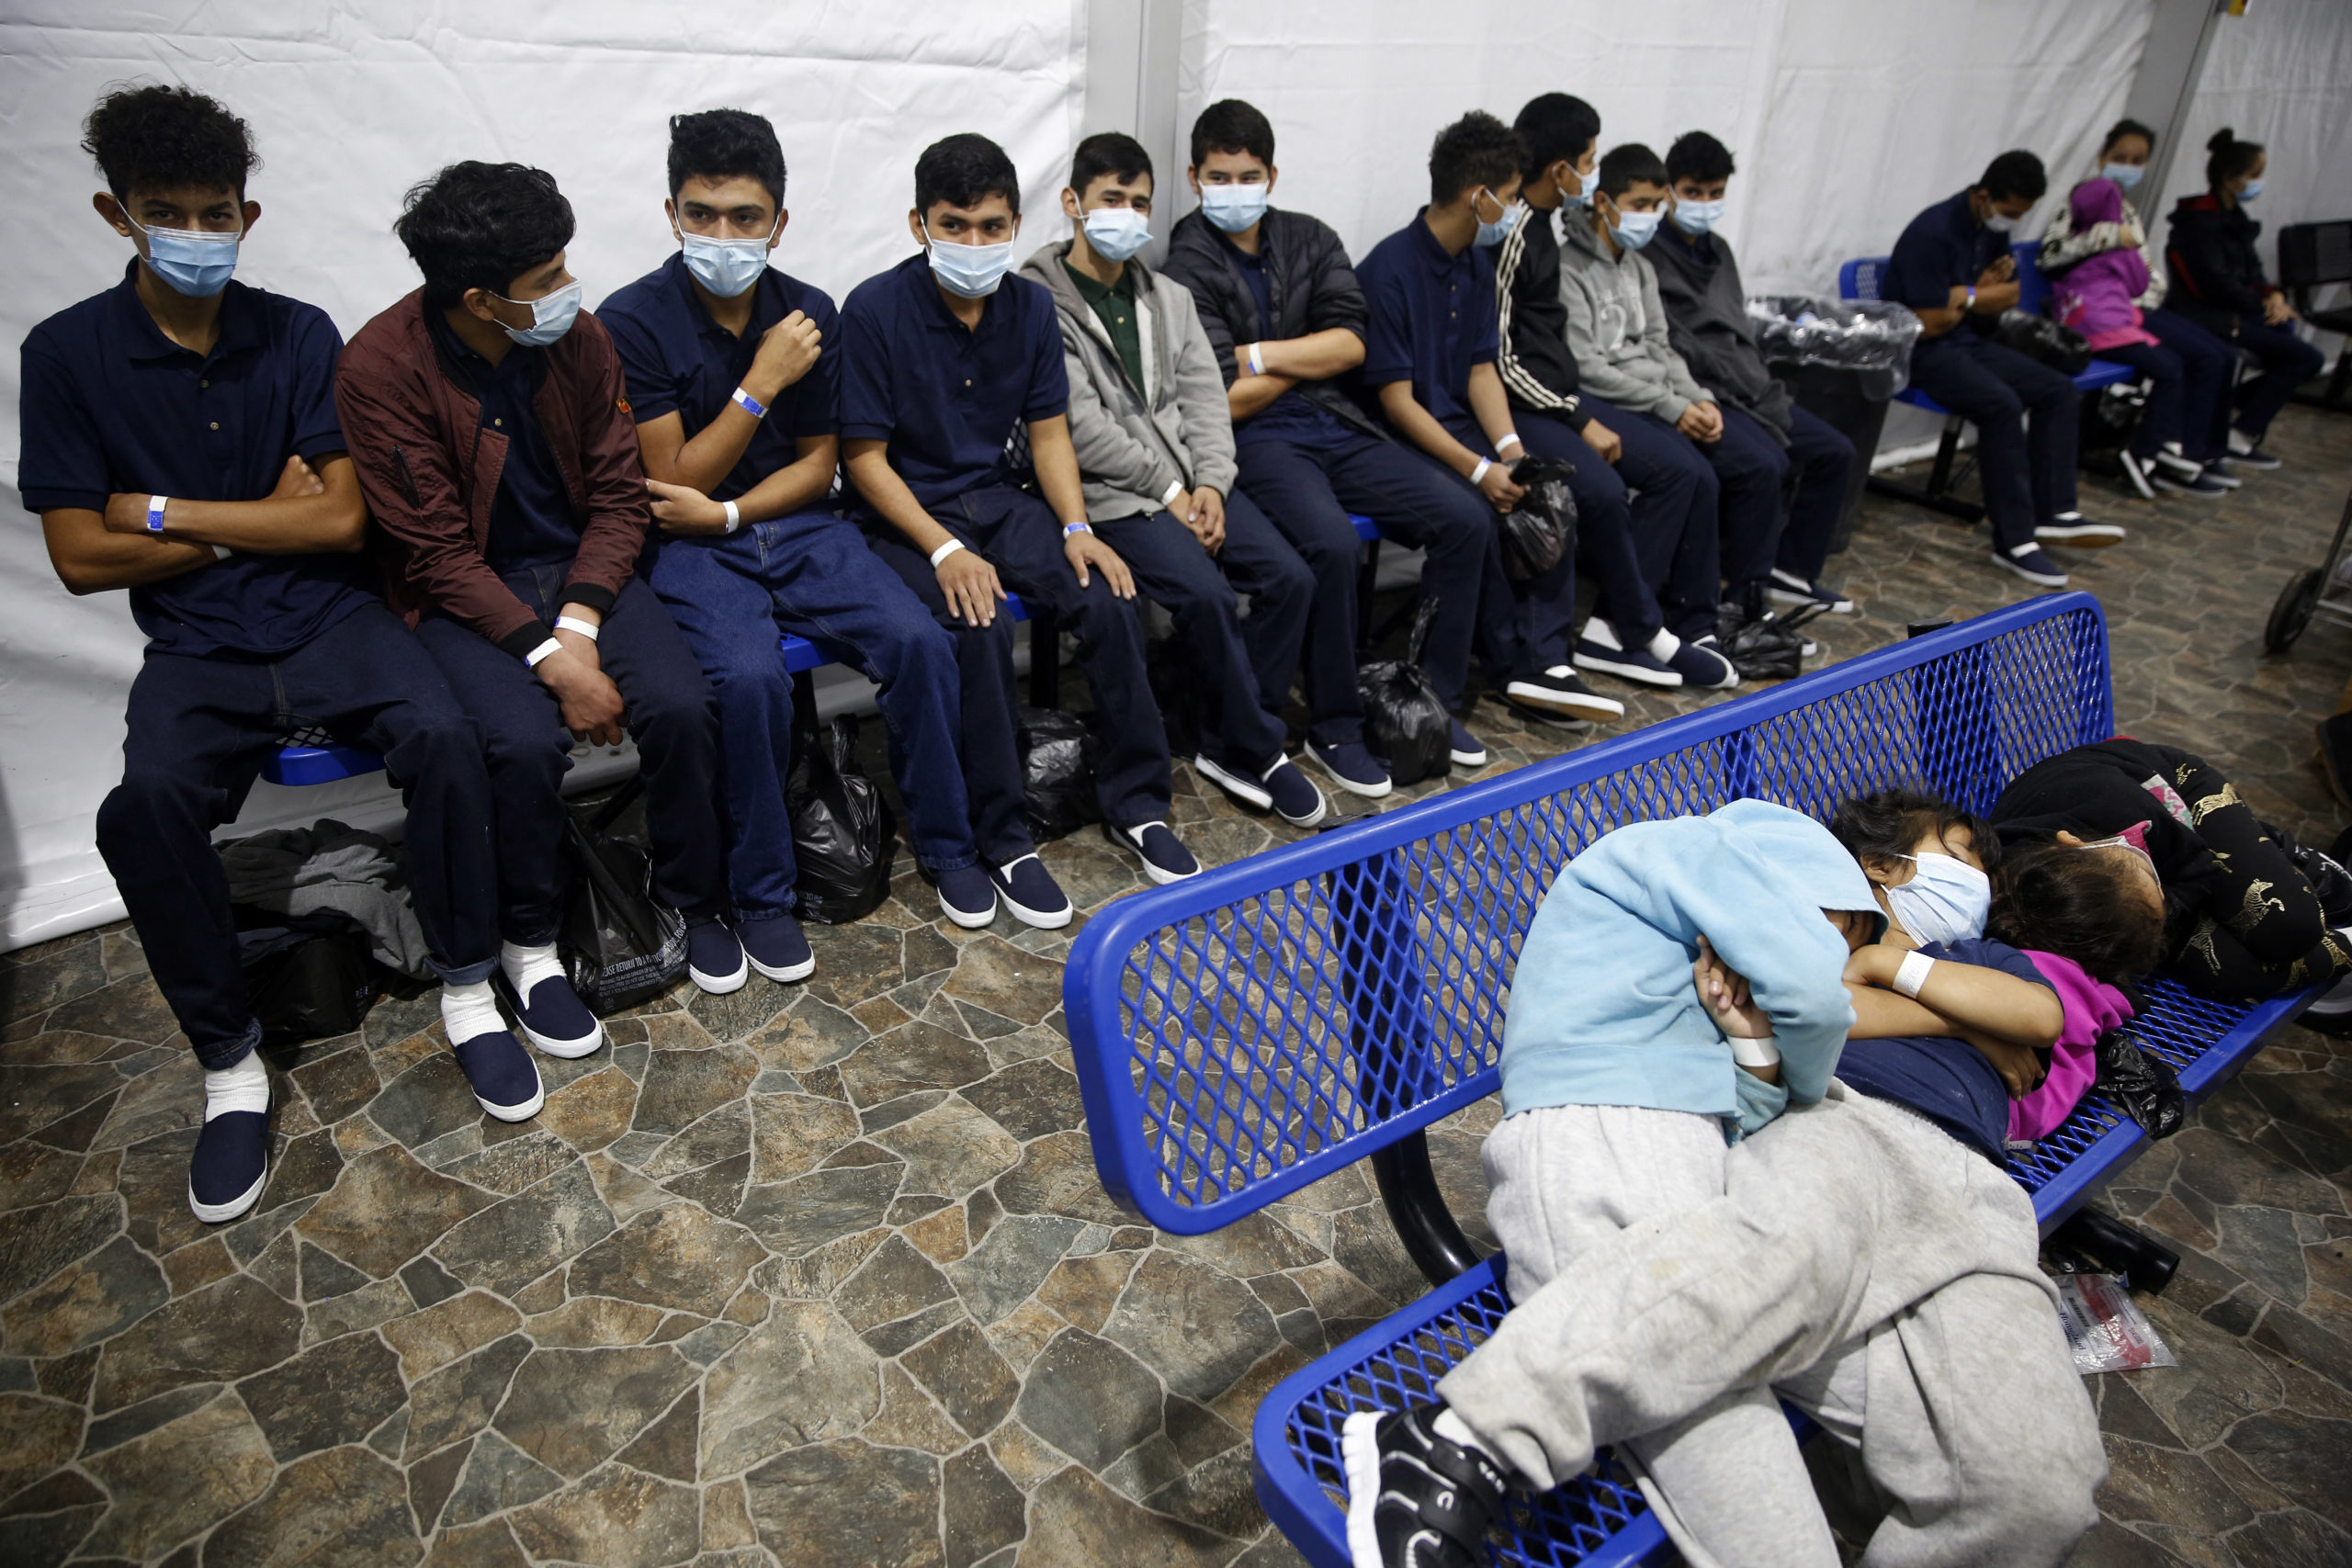 Young unaccompanied migrants, wait for their turn at the secondary processing station inside the Donna Department of Homeland Security holding facility, the main detention center for unaccompanied children in the Rio Grande Valley in Donna, Texas on March 30, 2021. - The Biden administration on Tuesday for the first time allowed journalists inside its main detention facility at the border for migrant children, revealing a severely overcrowded tent structure where more than 4,000 kids and families were crammed into pods and the youngest kept in a large play pen with mats on the floor for sleeping. (Photo by Dario Lopez-Mills / POOL / AFP) (Photo by DARIO LOPEZ-MILLS/POOL/AFP via Getty Images)